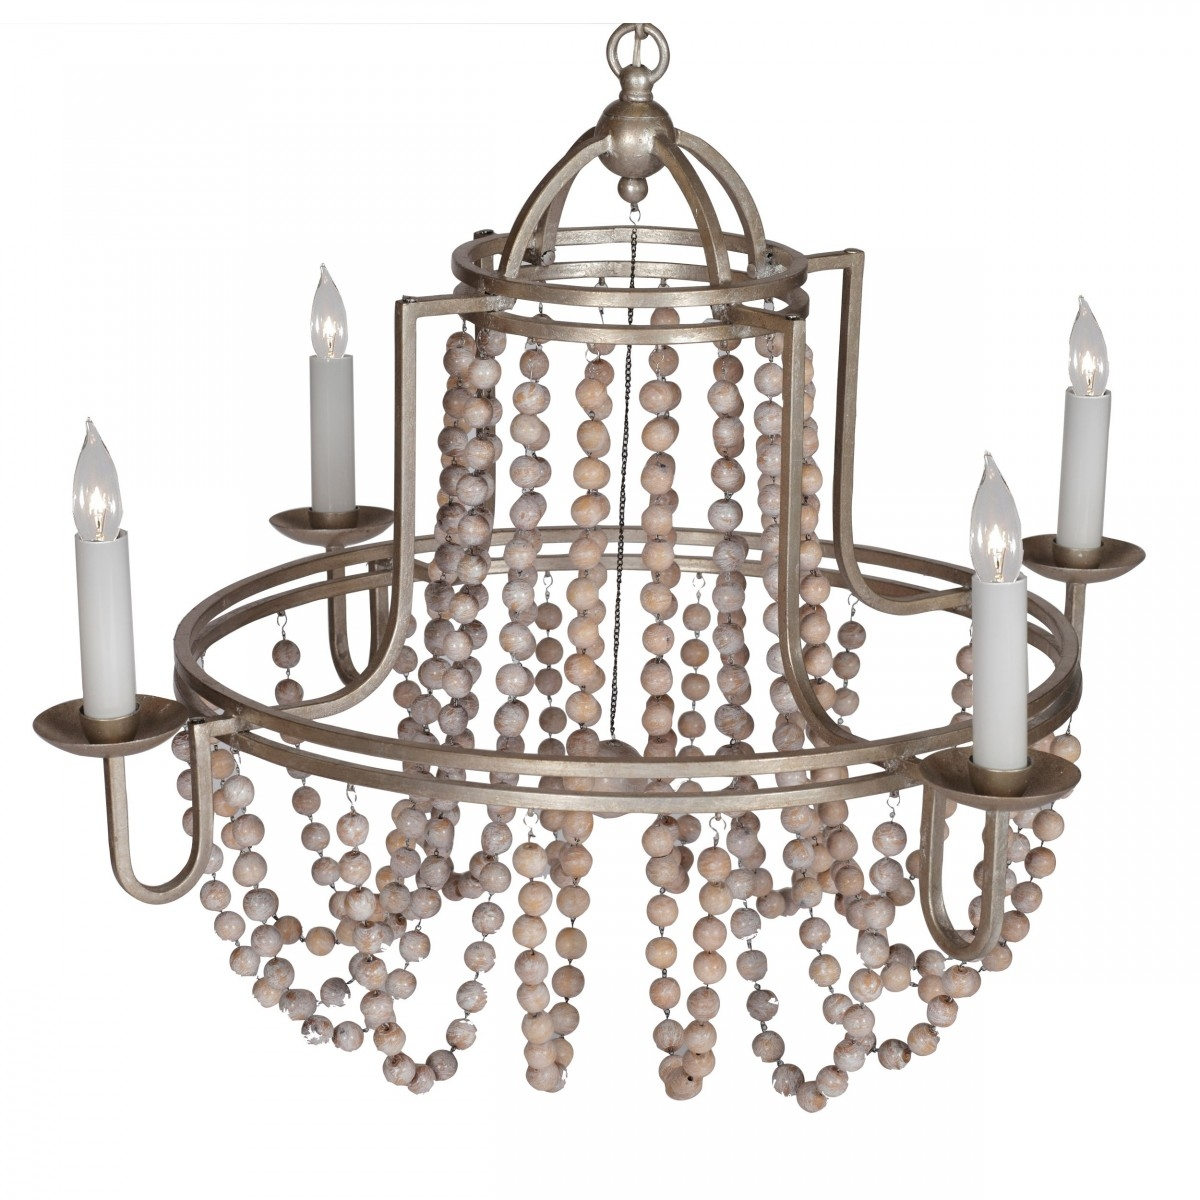 Gab Sonya Chandelier Candelabra Inc Throughout Gabby Chandelier (Image 13 of 15)